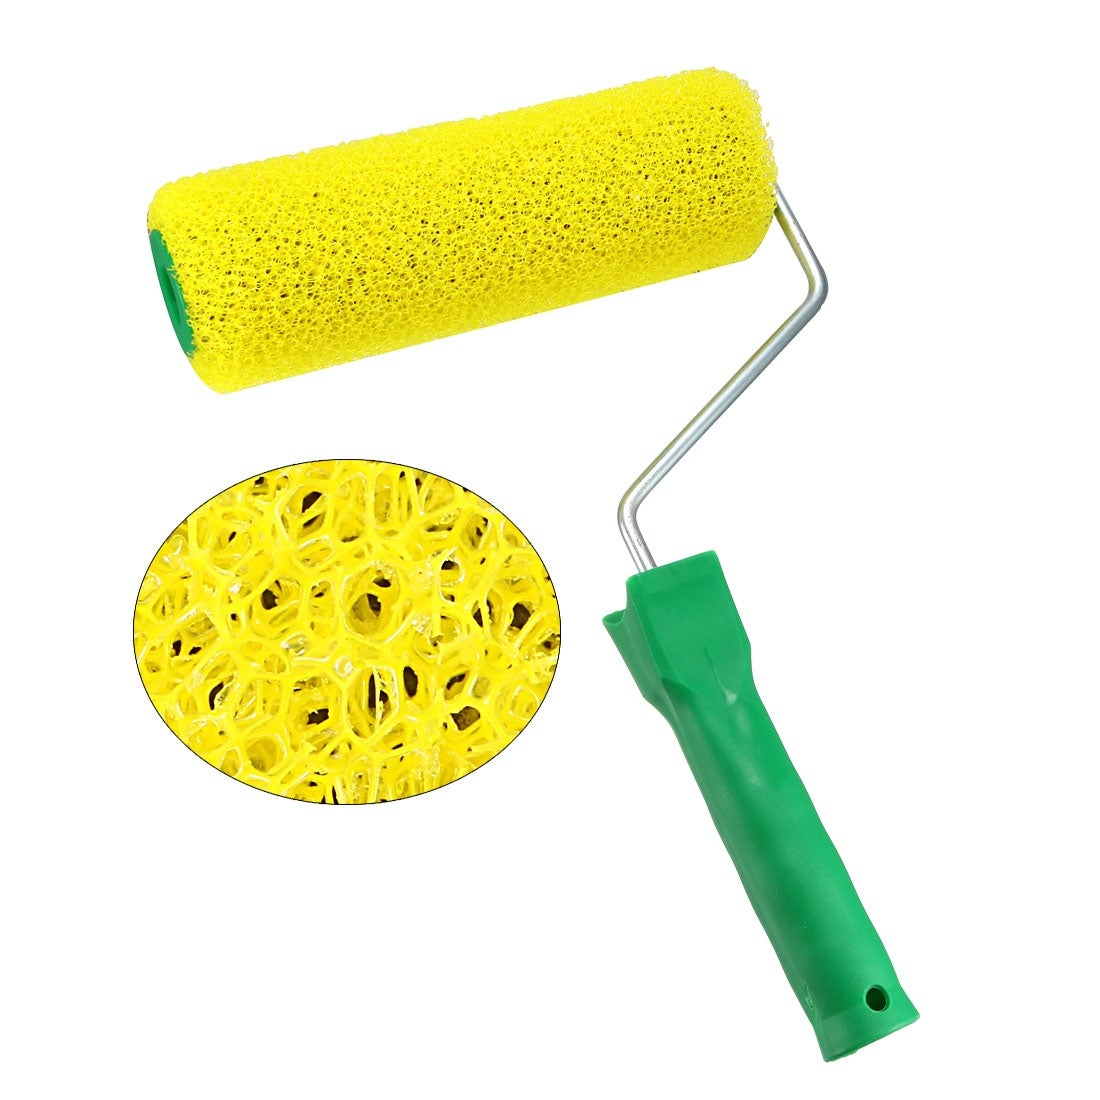 8inch Home Wall Sponge Paint Roller Painting Brush Cover Fame Kit Maximal Coarse 8 Max Coarse 8 Max Coarse